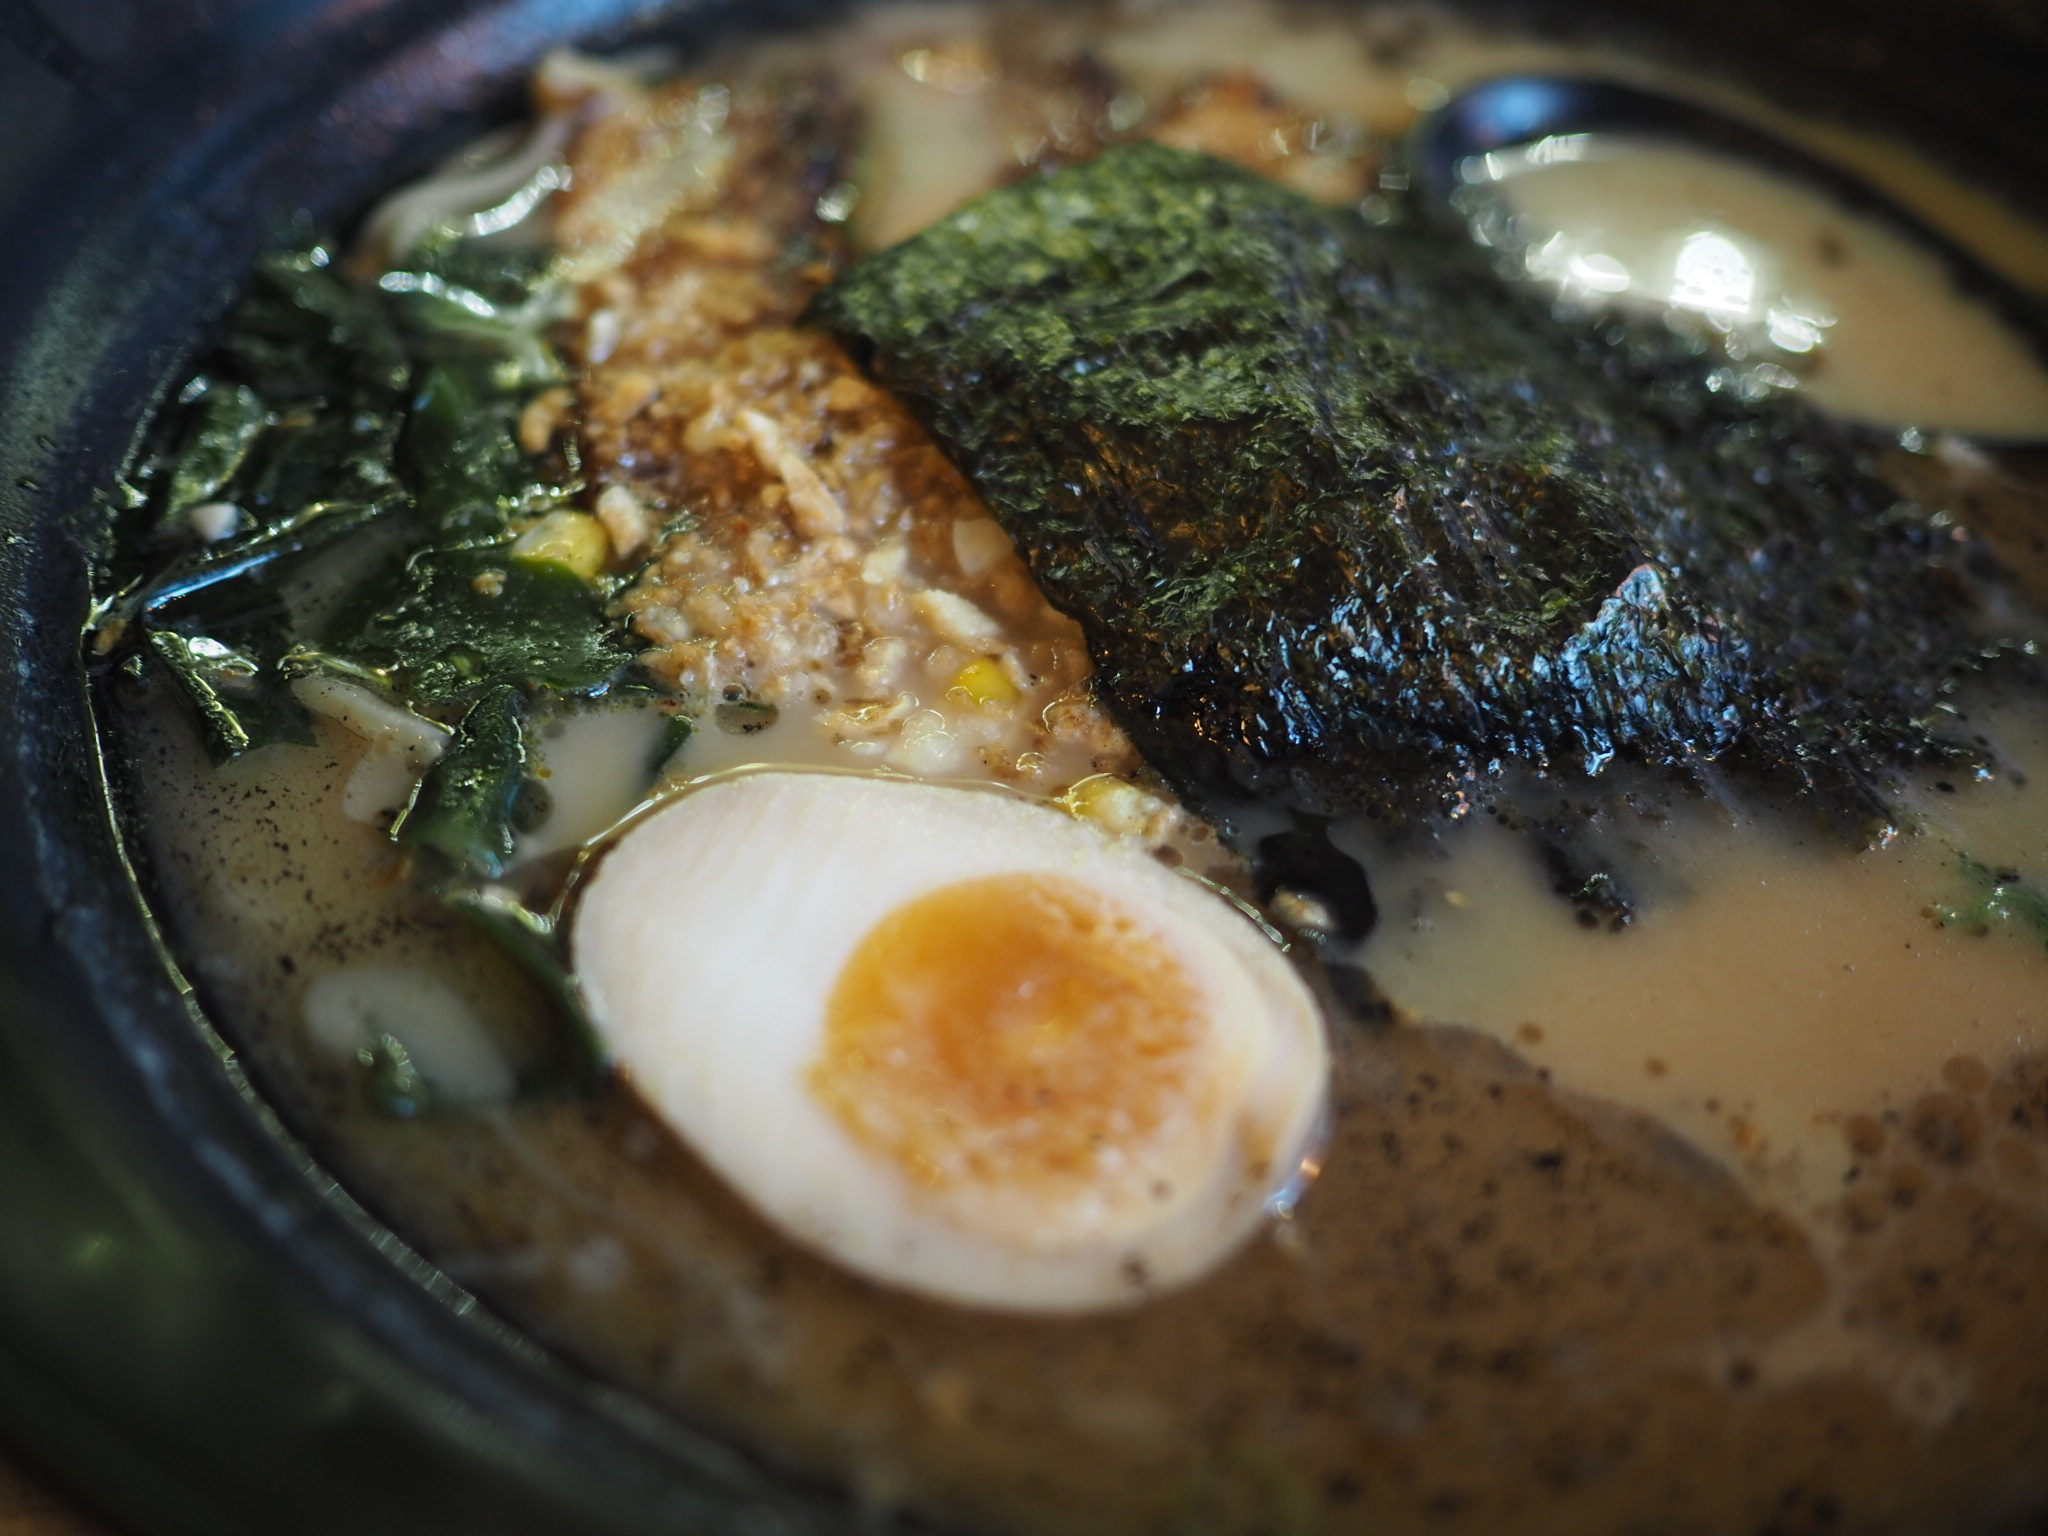 Maki-Ramen-Richmond-St-Black-garlic-oil-ramen